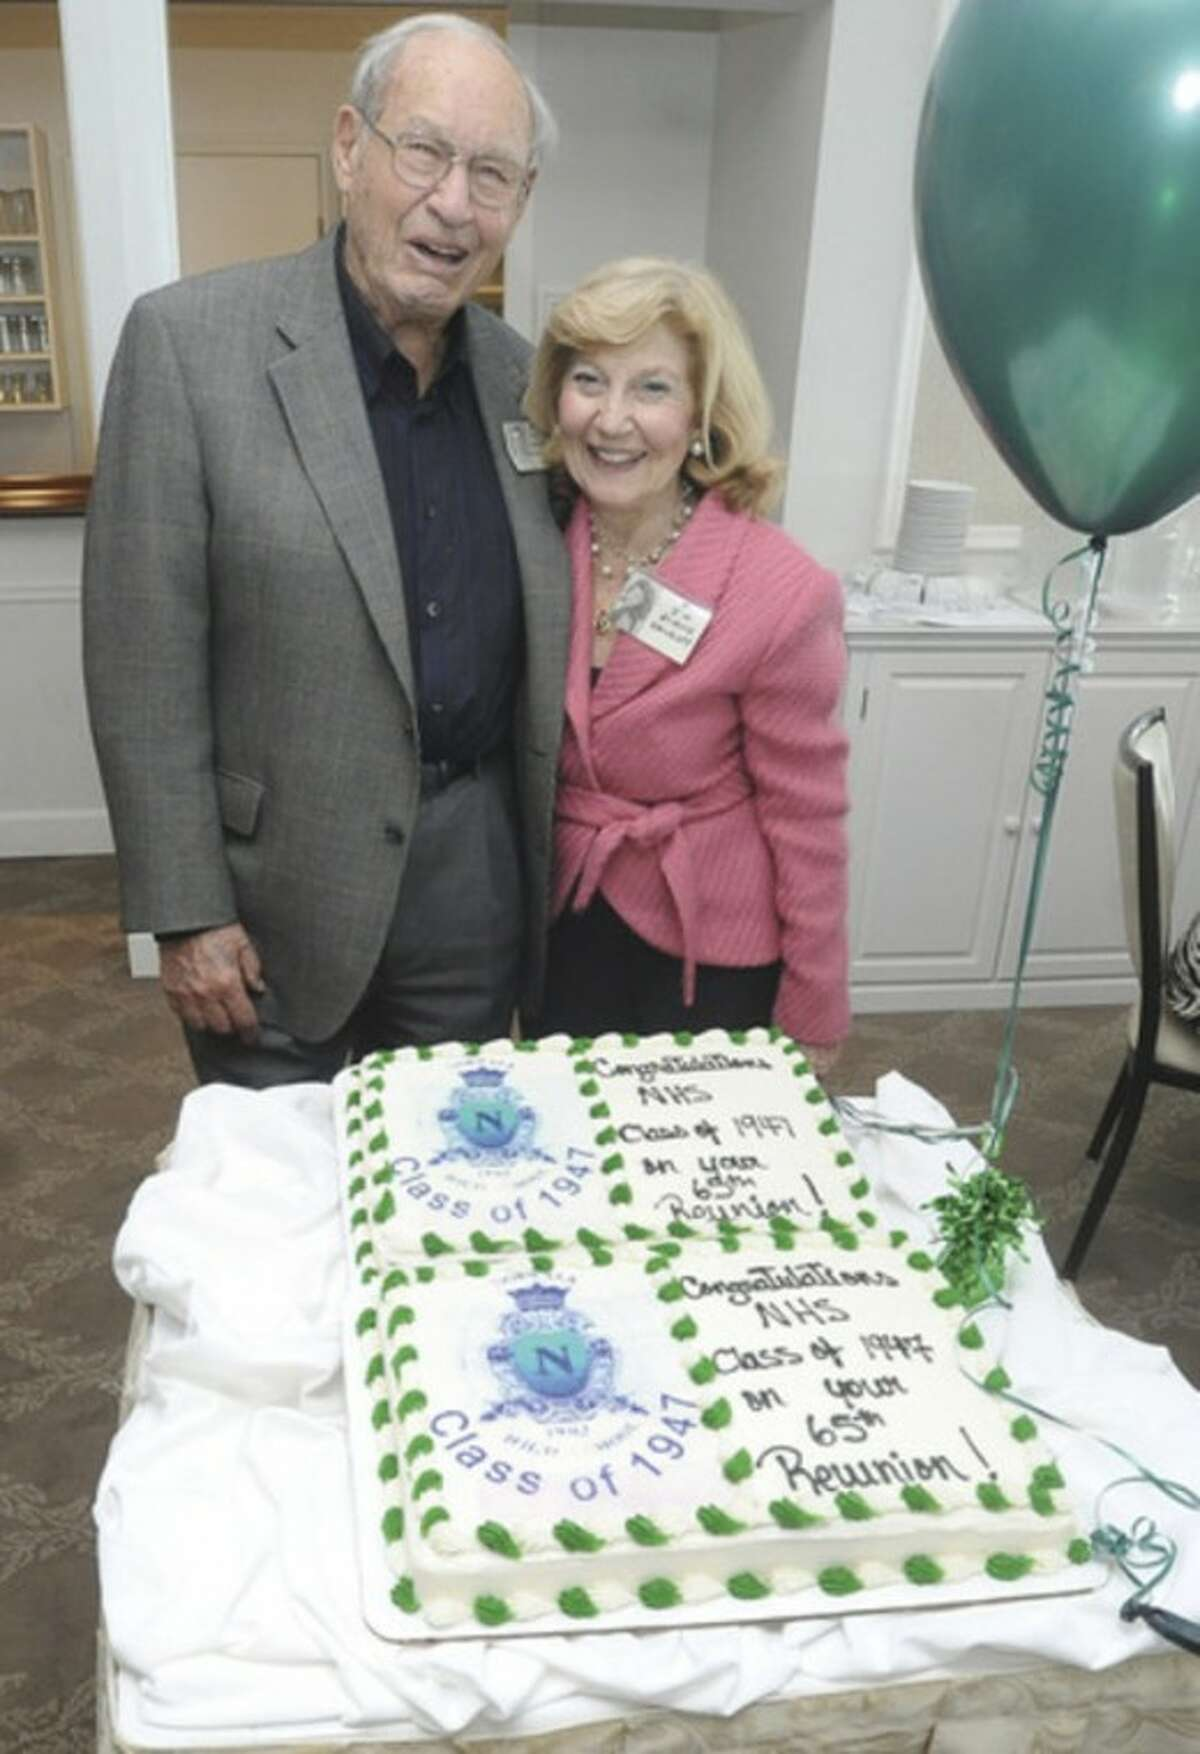 Dr. Charles Stabinsky, M.D. and Elaine Walkoff, co-chairs of the NHS class of 1947 reunion at Shore and Country Club. hour photo/Matthew Vinci